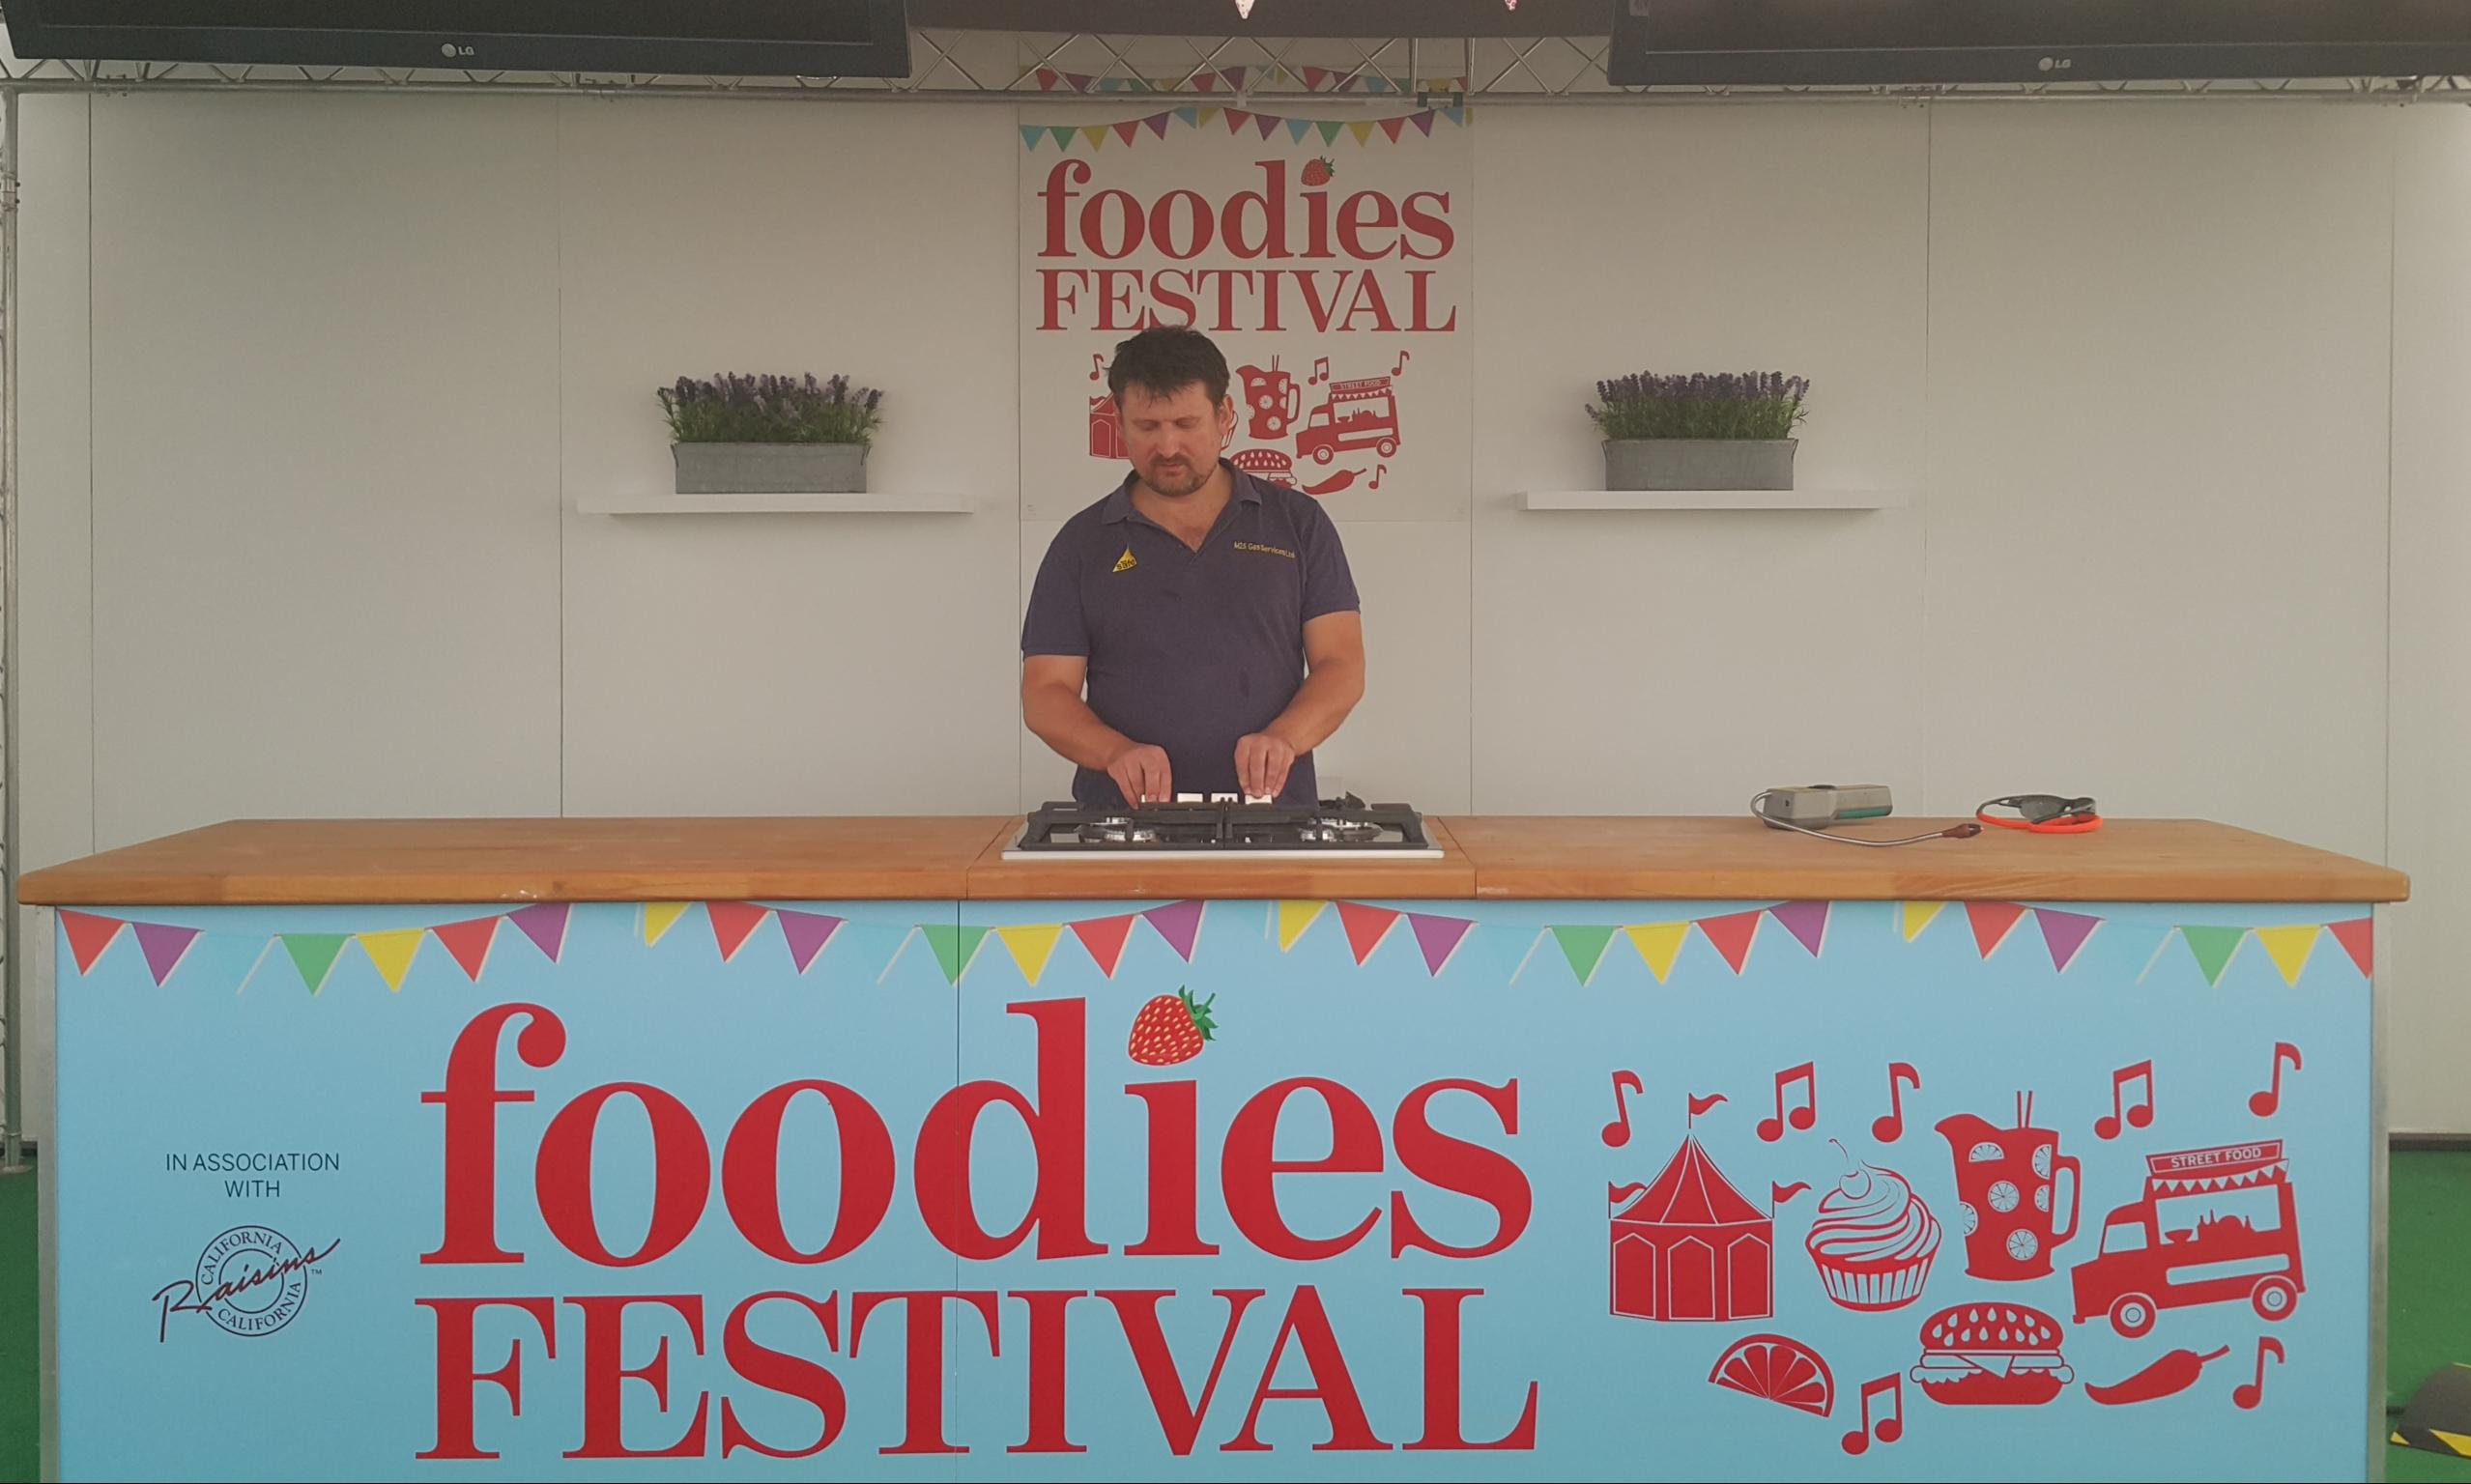 Making sure the gas safety of Foodies Festival